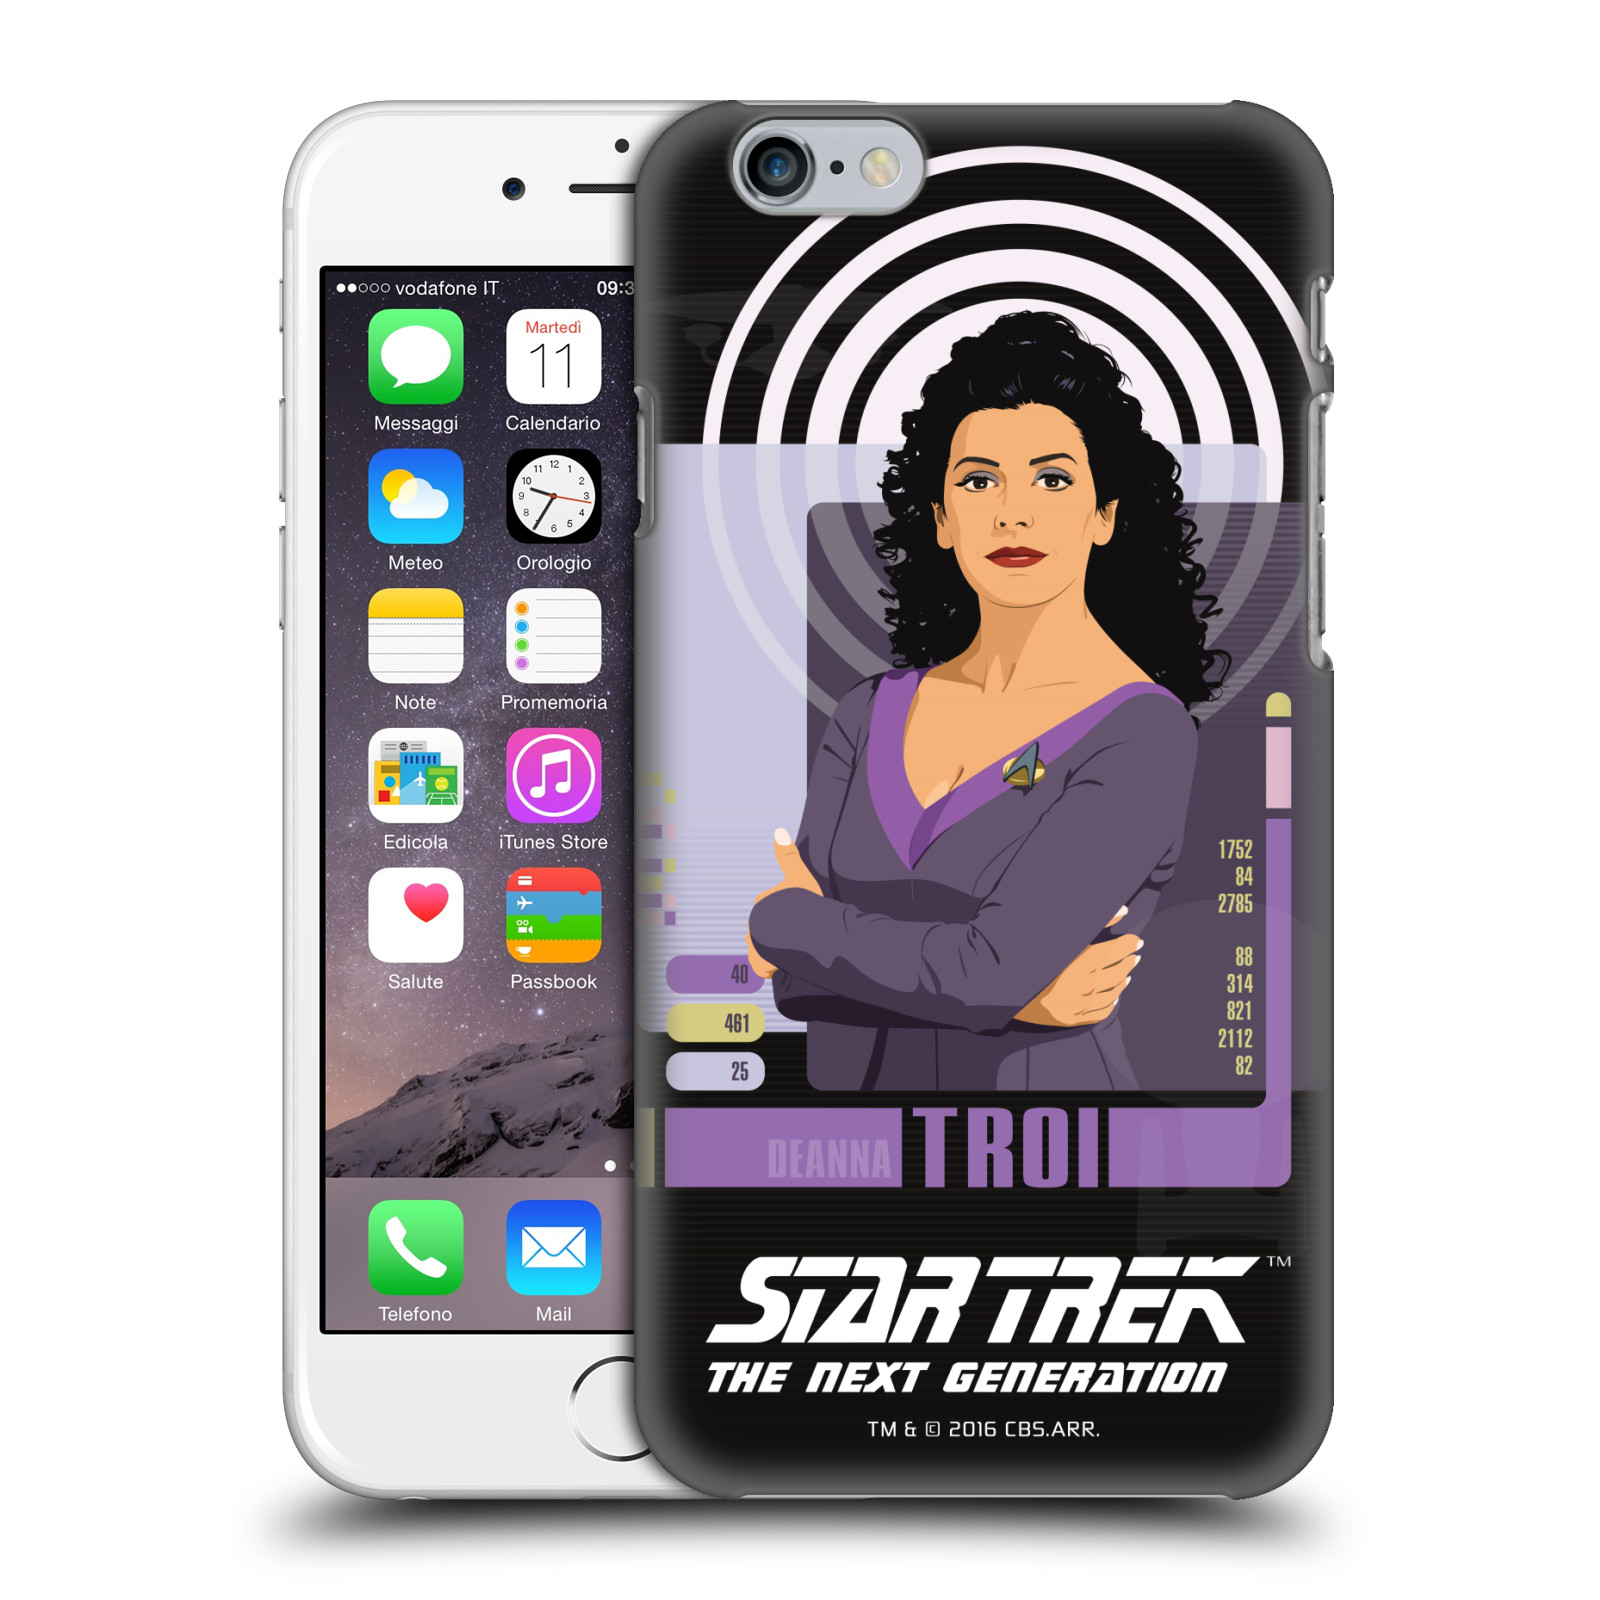 Star Trek Iconic Characters TNG-Deanna Troi